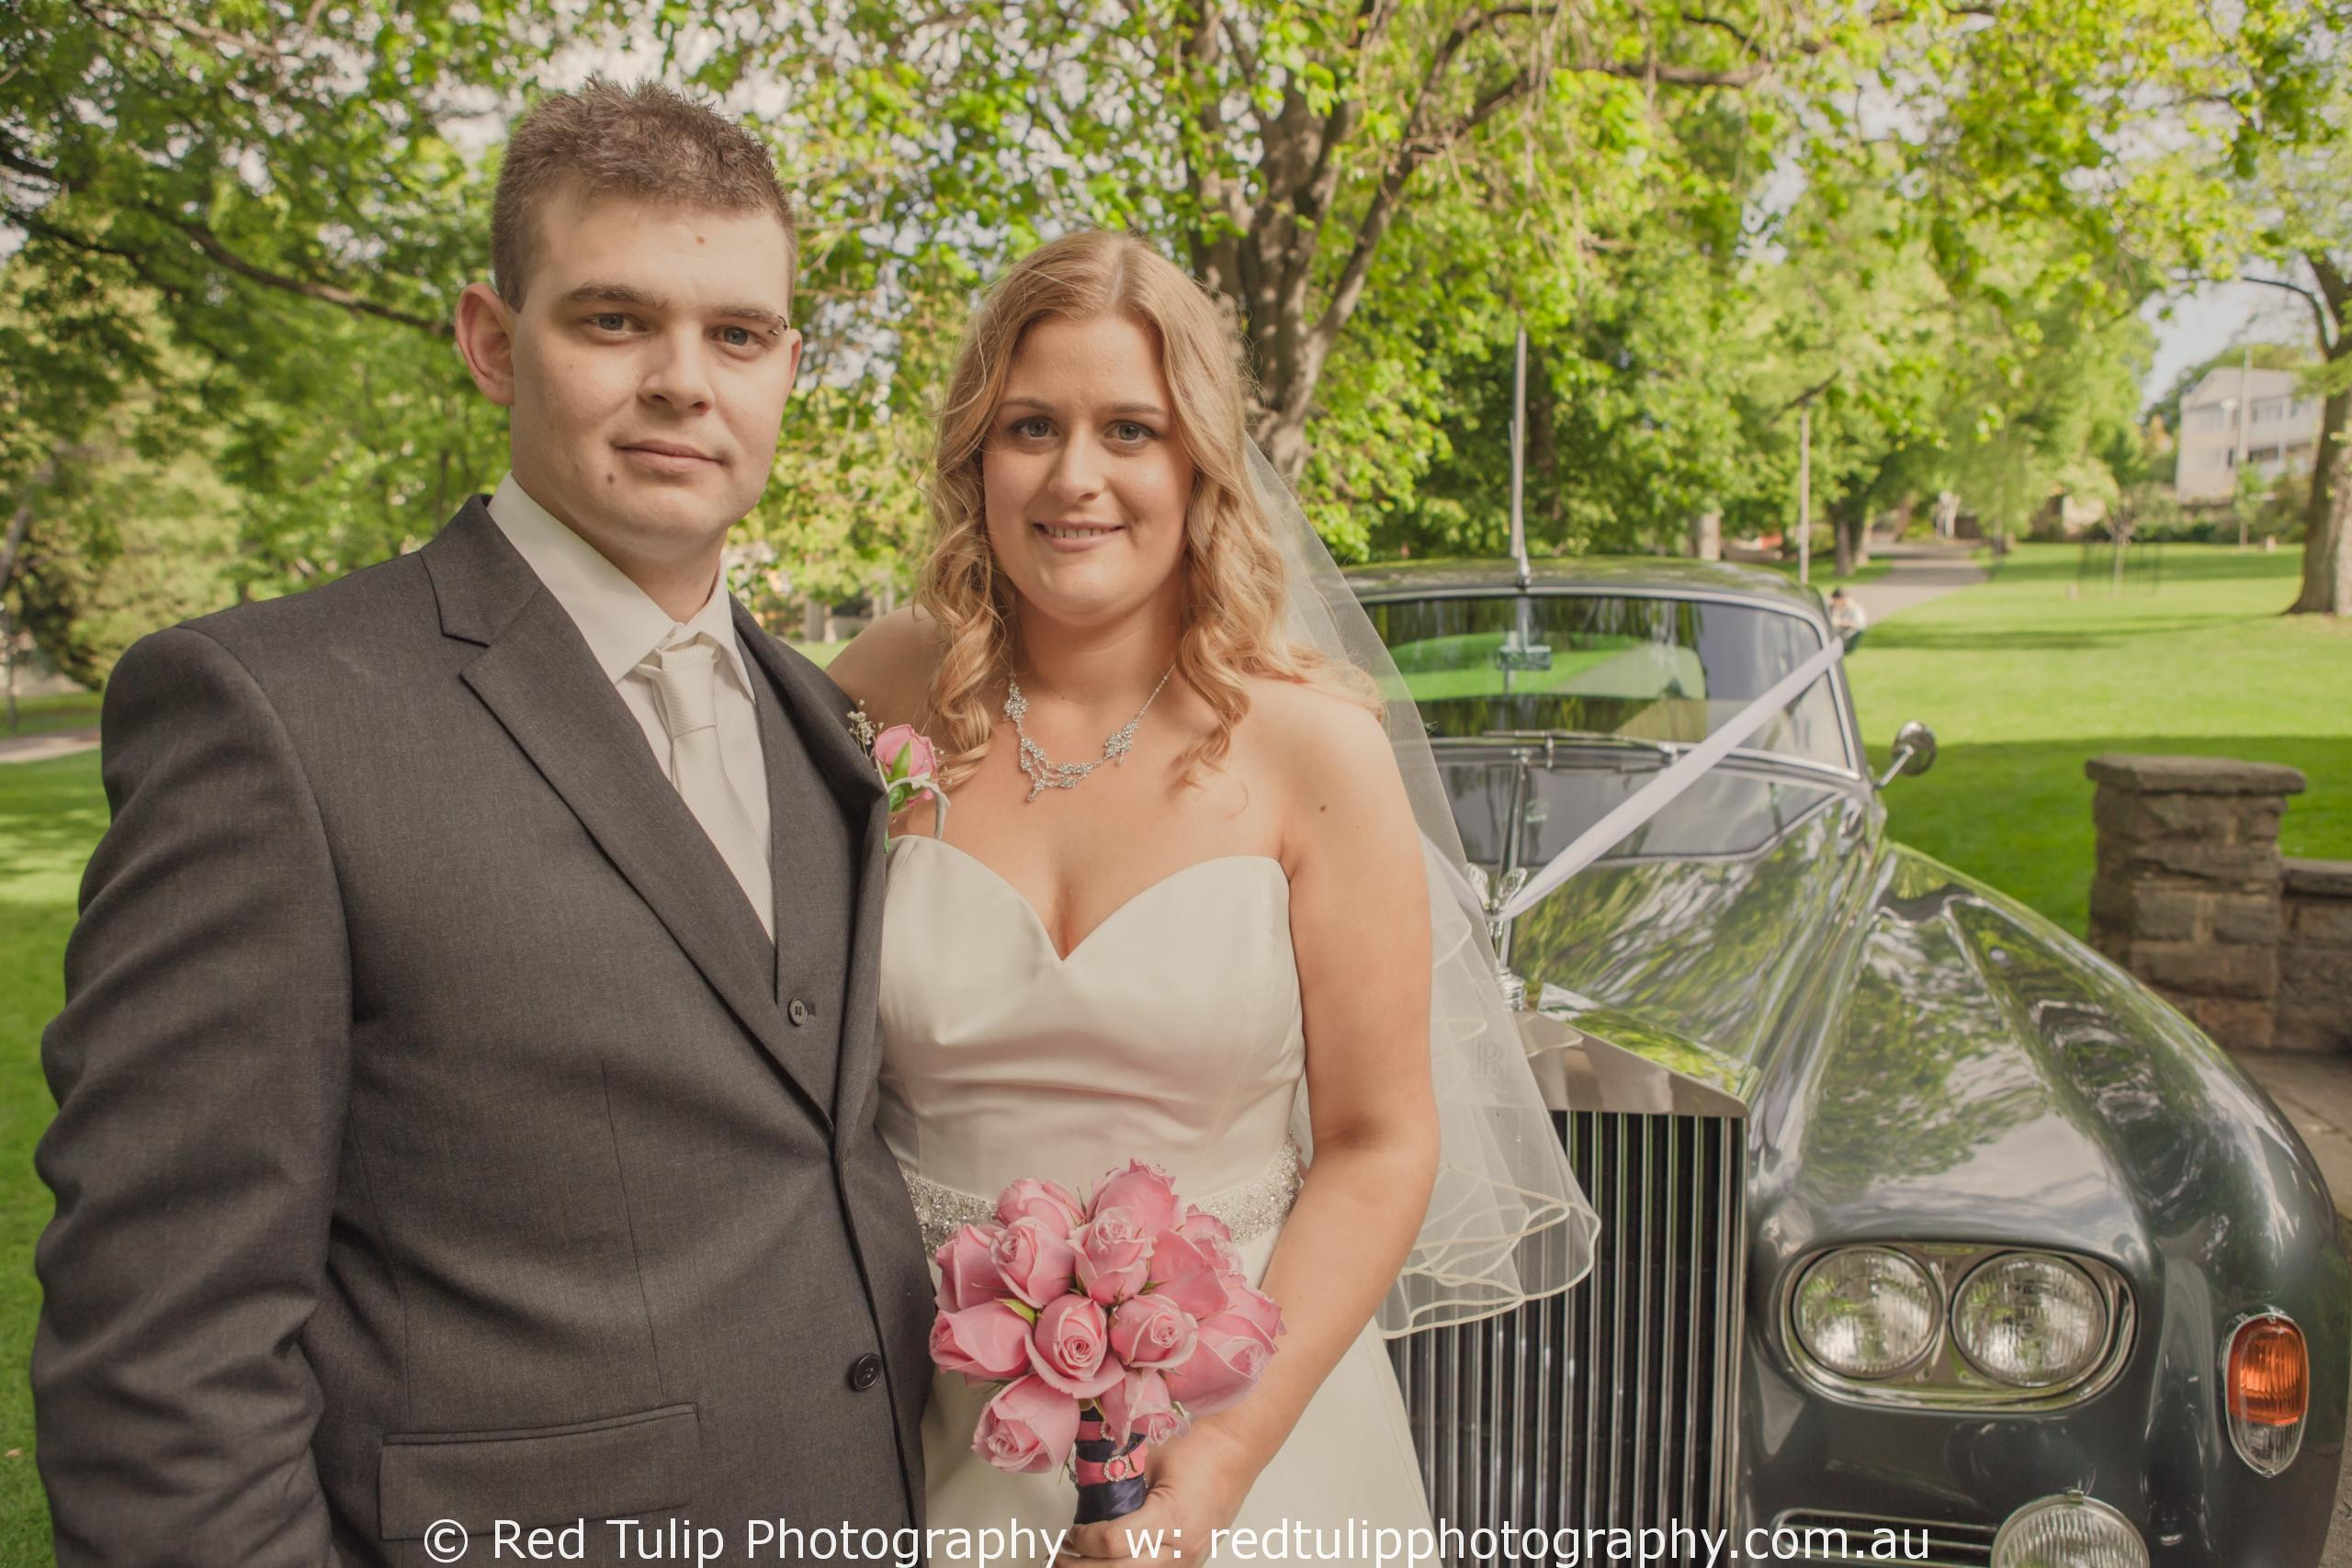 Wedding couple portrait with car